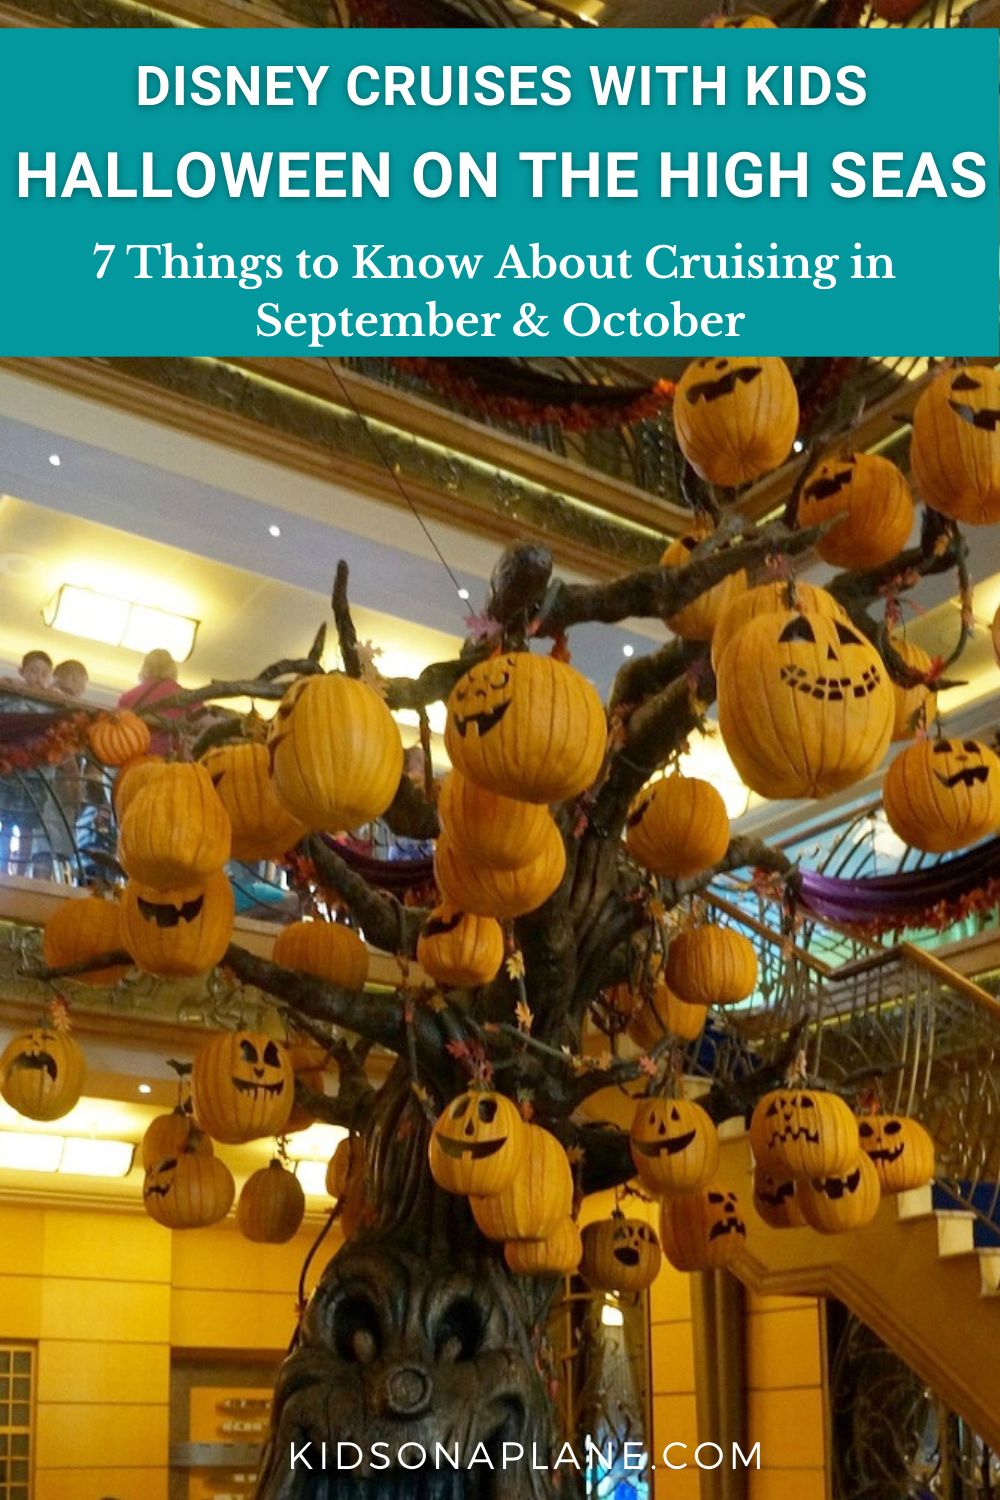 Halloween on the High Seas - Tips for Disney Cruises in September and October